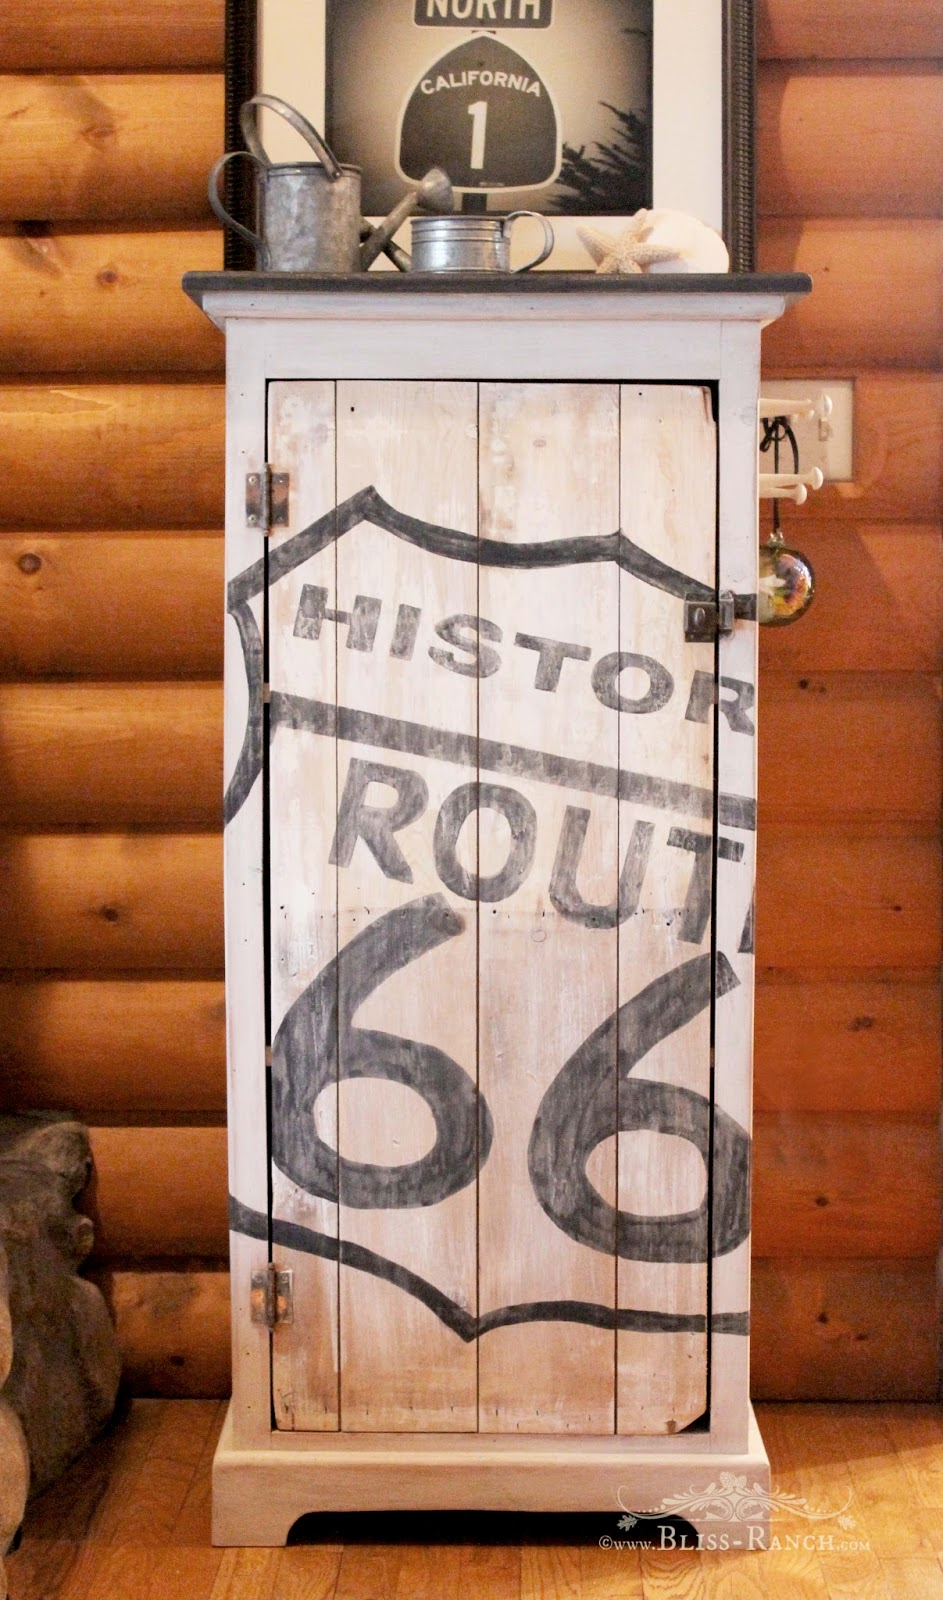 Route 66 Cabinet Copycat Bliss-Ranch.com